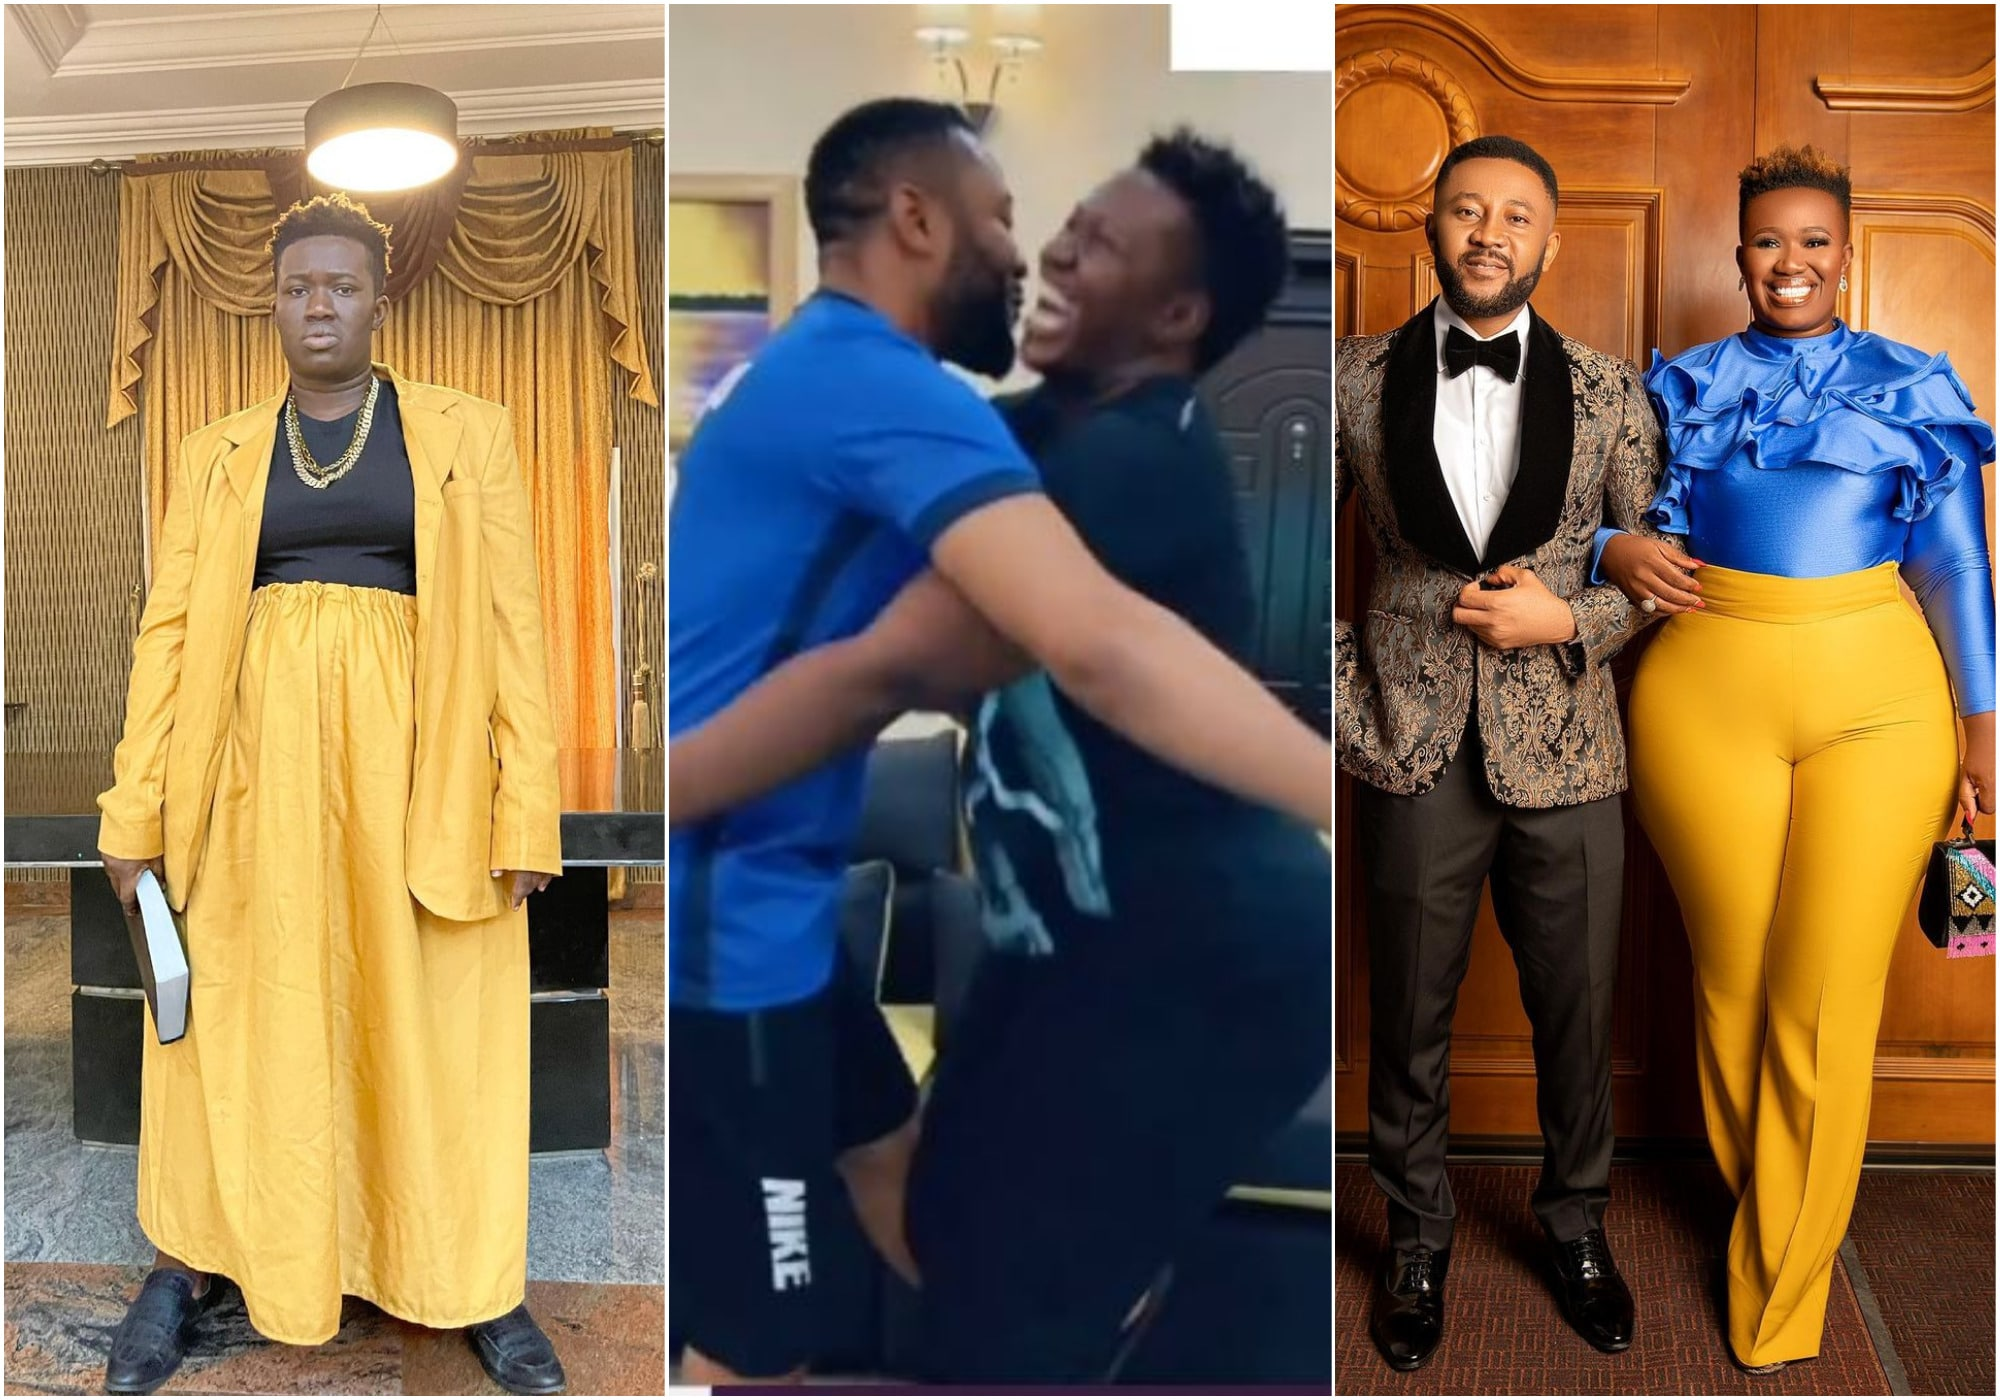 Famous Nigerian comedian, Anita Asuoha who is professionally known as Real Warri Pikin, laments her weight as she reveals that her husband could not carry her.